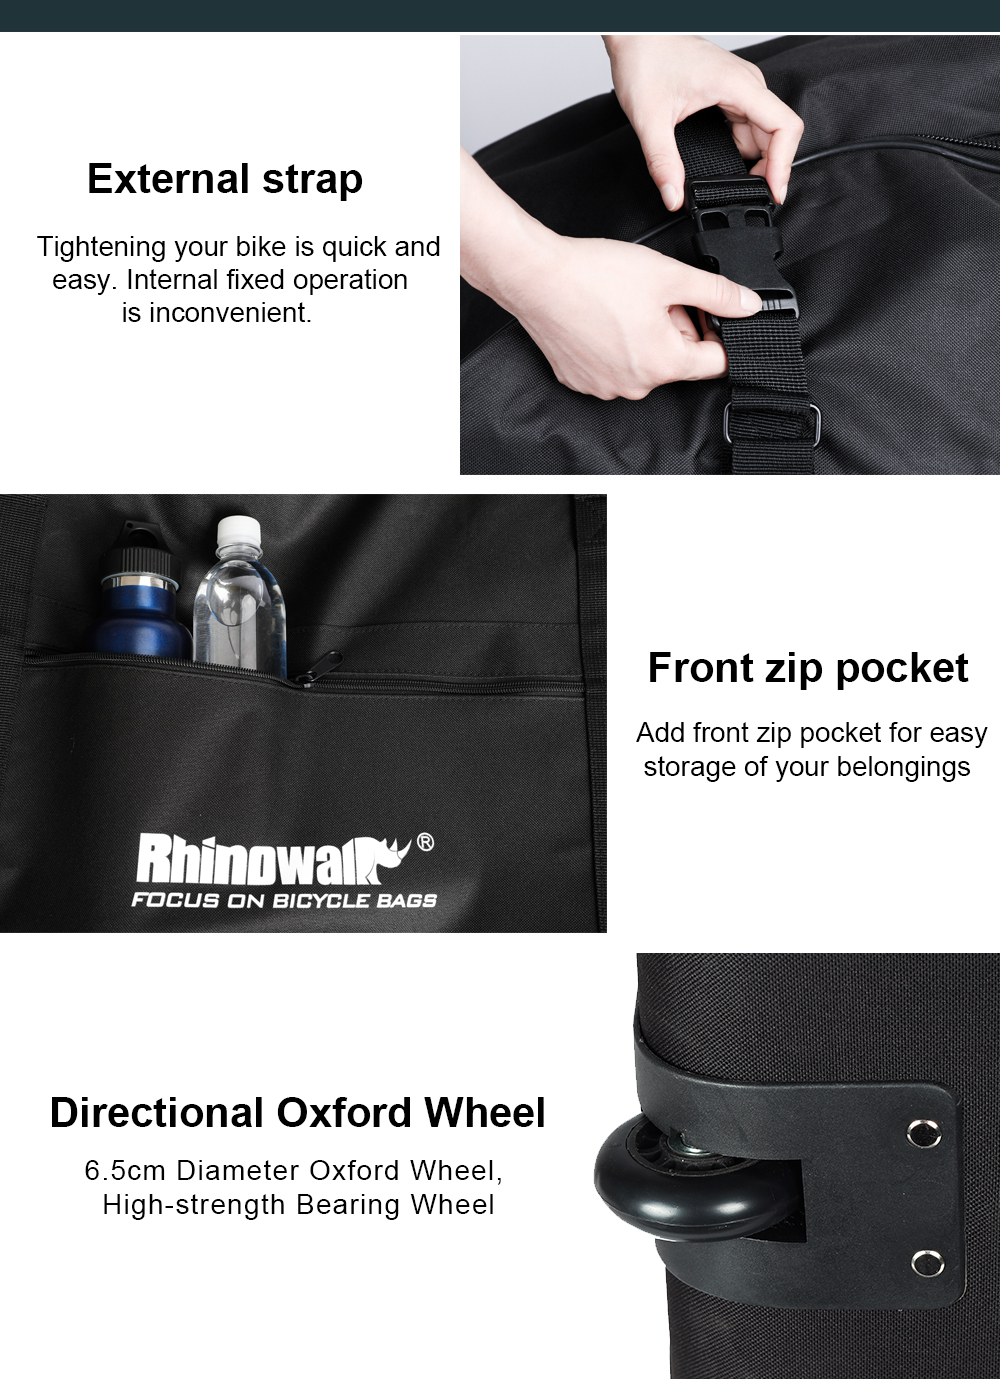 Rhinowalk Folding Bicycle Storage Bag Oxford Wear-resisting Luggage Cases for 20-22 Inch Folding Bike Electric Vehicles (13)